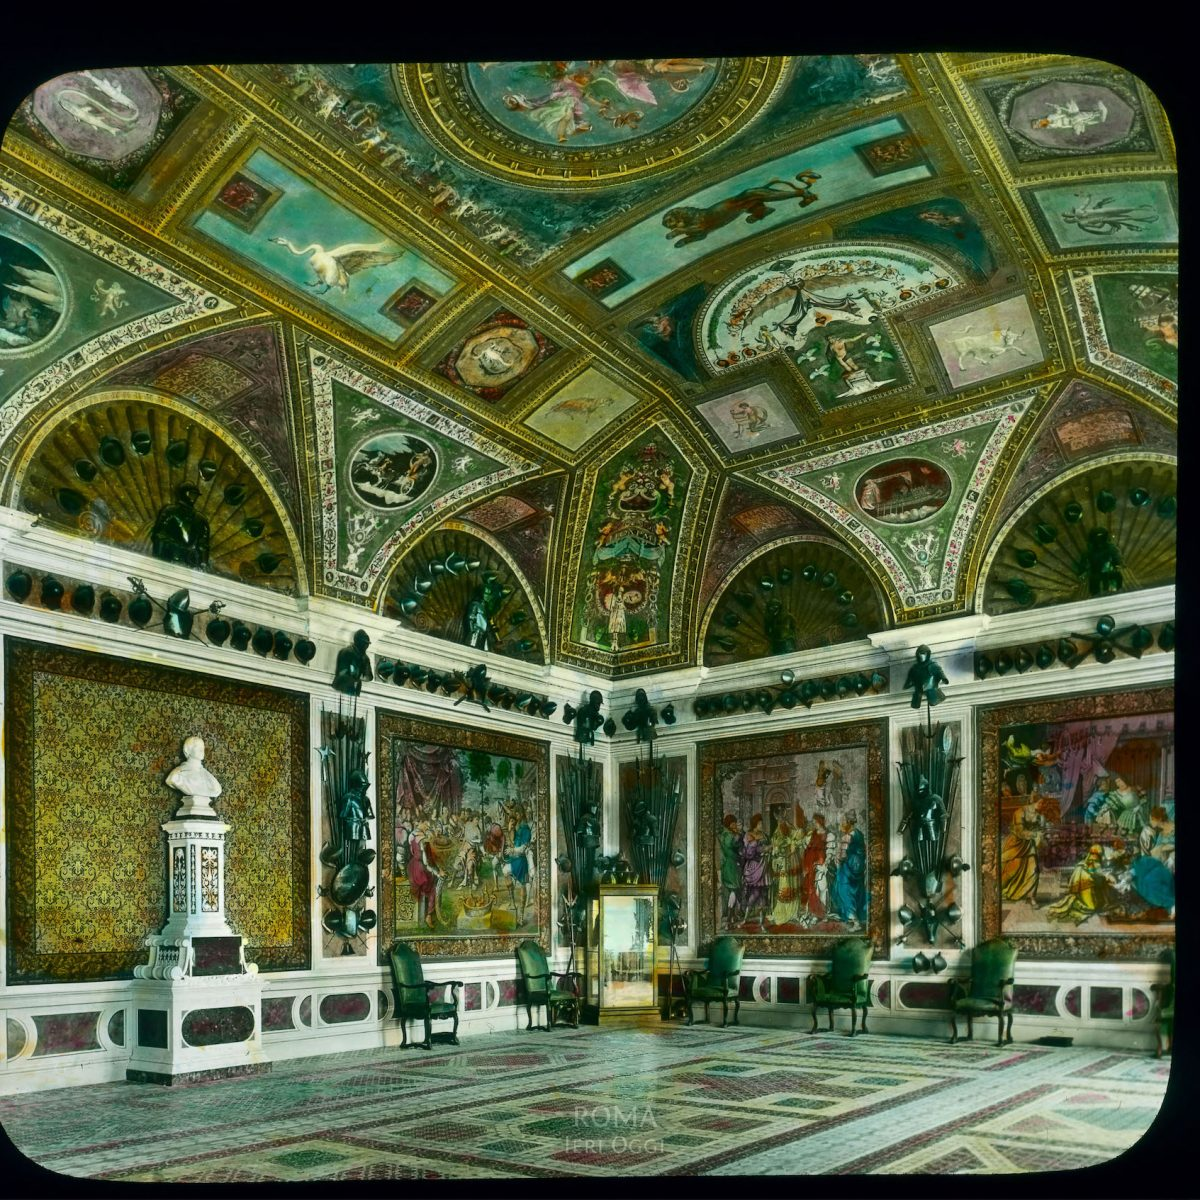 Vatican City. Apostolic Palace, Borgia Apartment: interior, Room of the Popes with French tapestries View in tinted lantern slide, ca. 1919-1938. This part of the palace was built ca. 1492-1503.